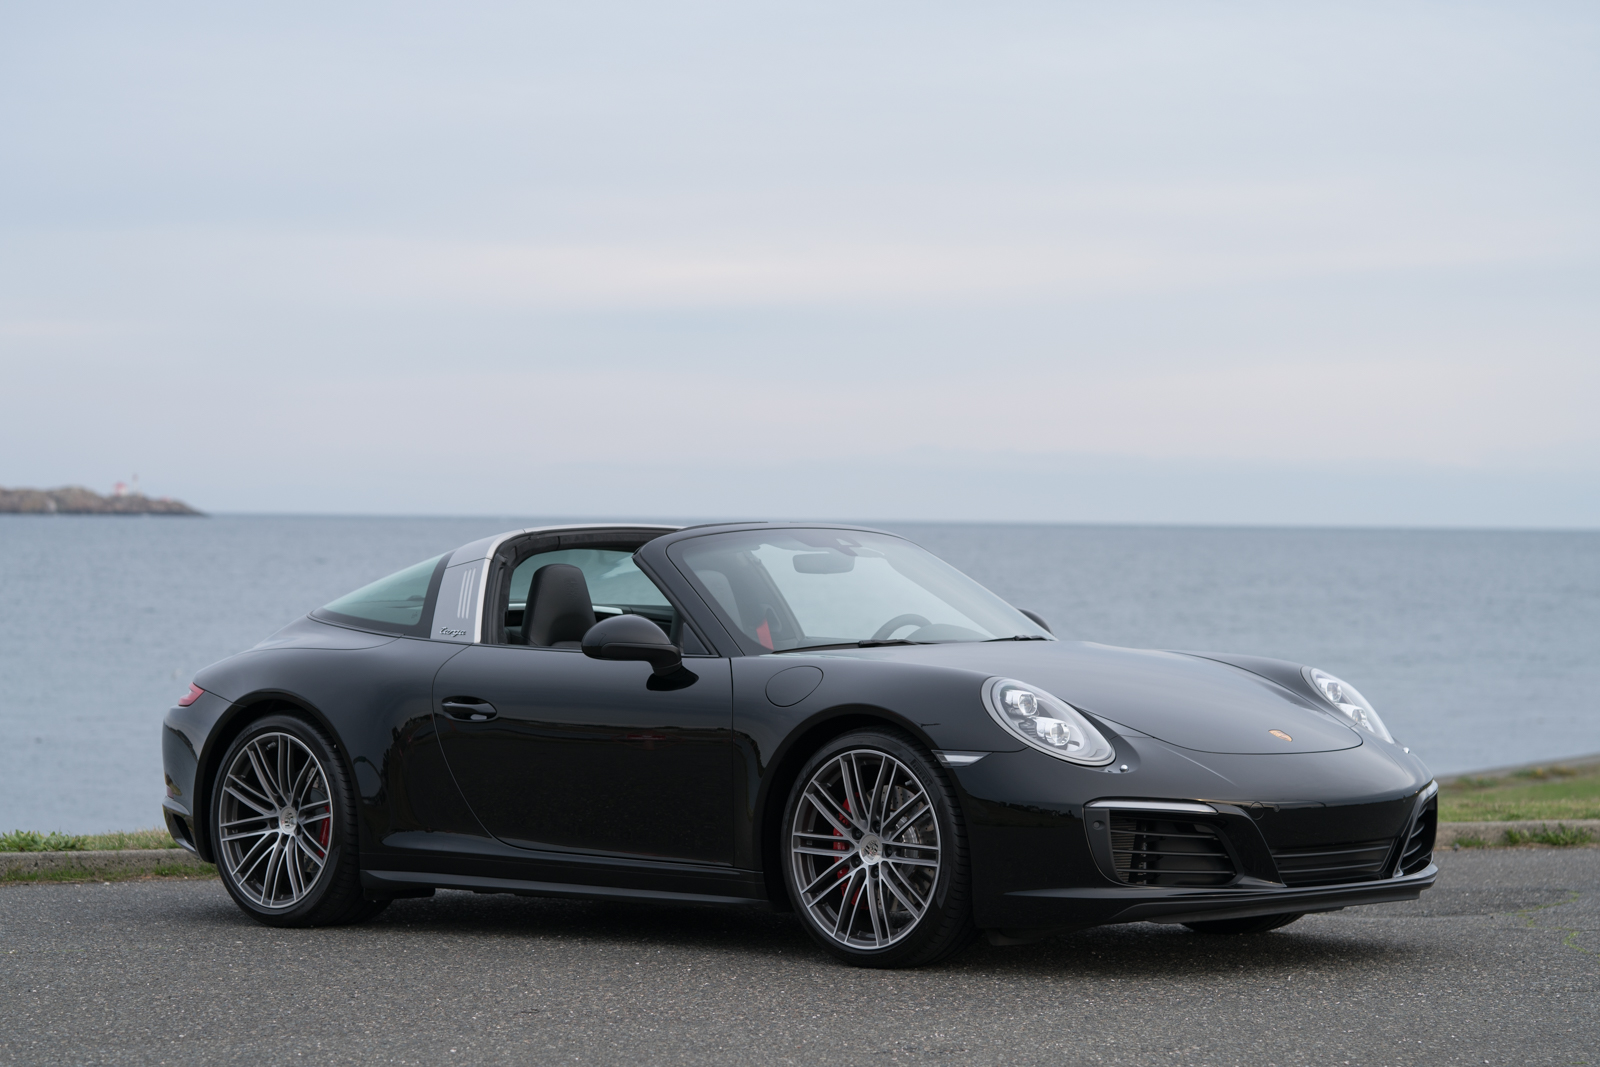 2017 Porsche 911 Targa 4s For Sale In Victoria Bc Silver